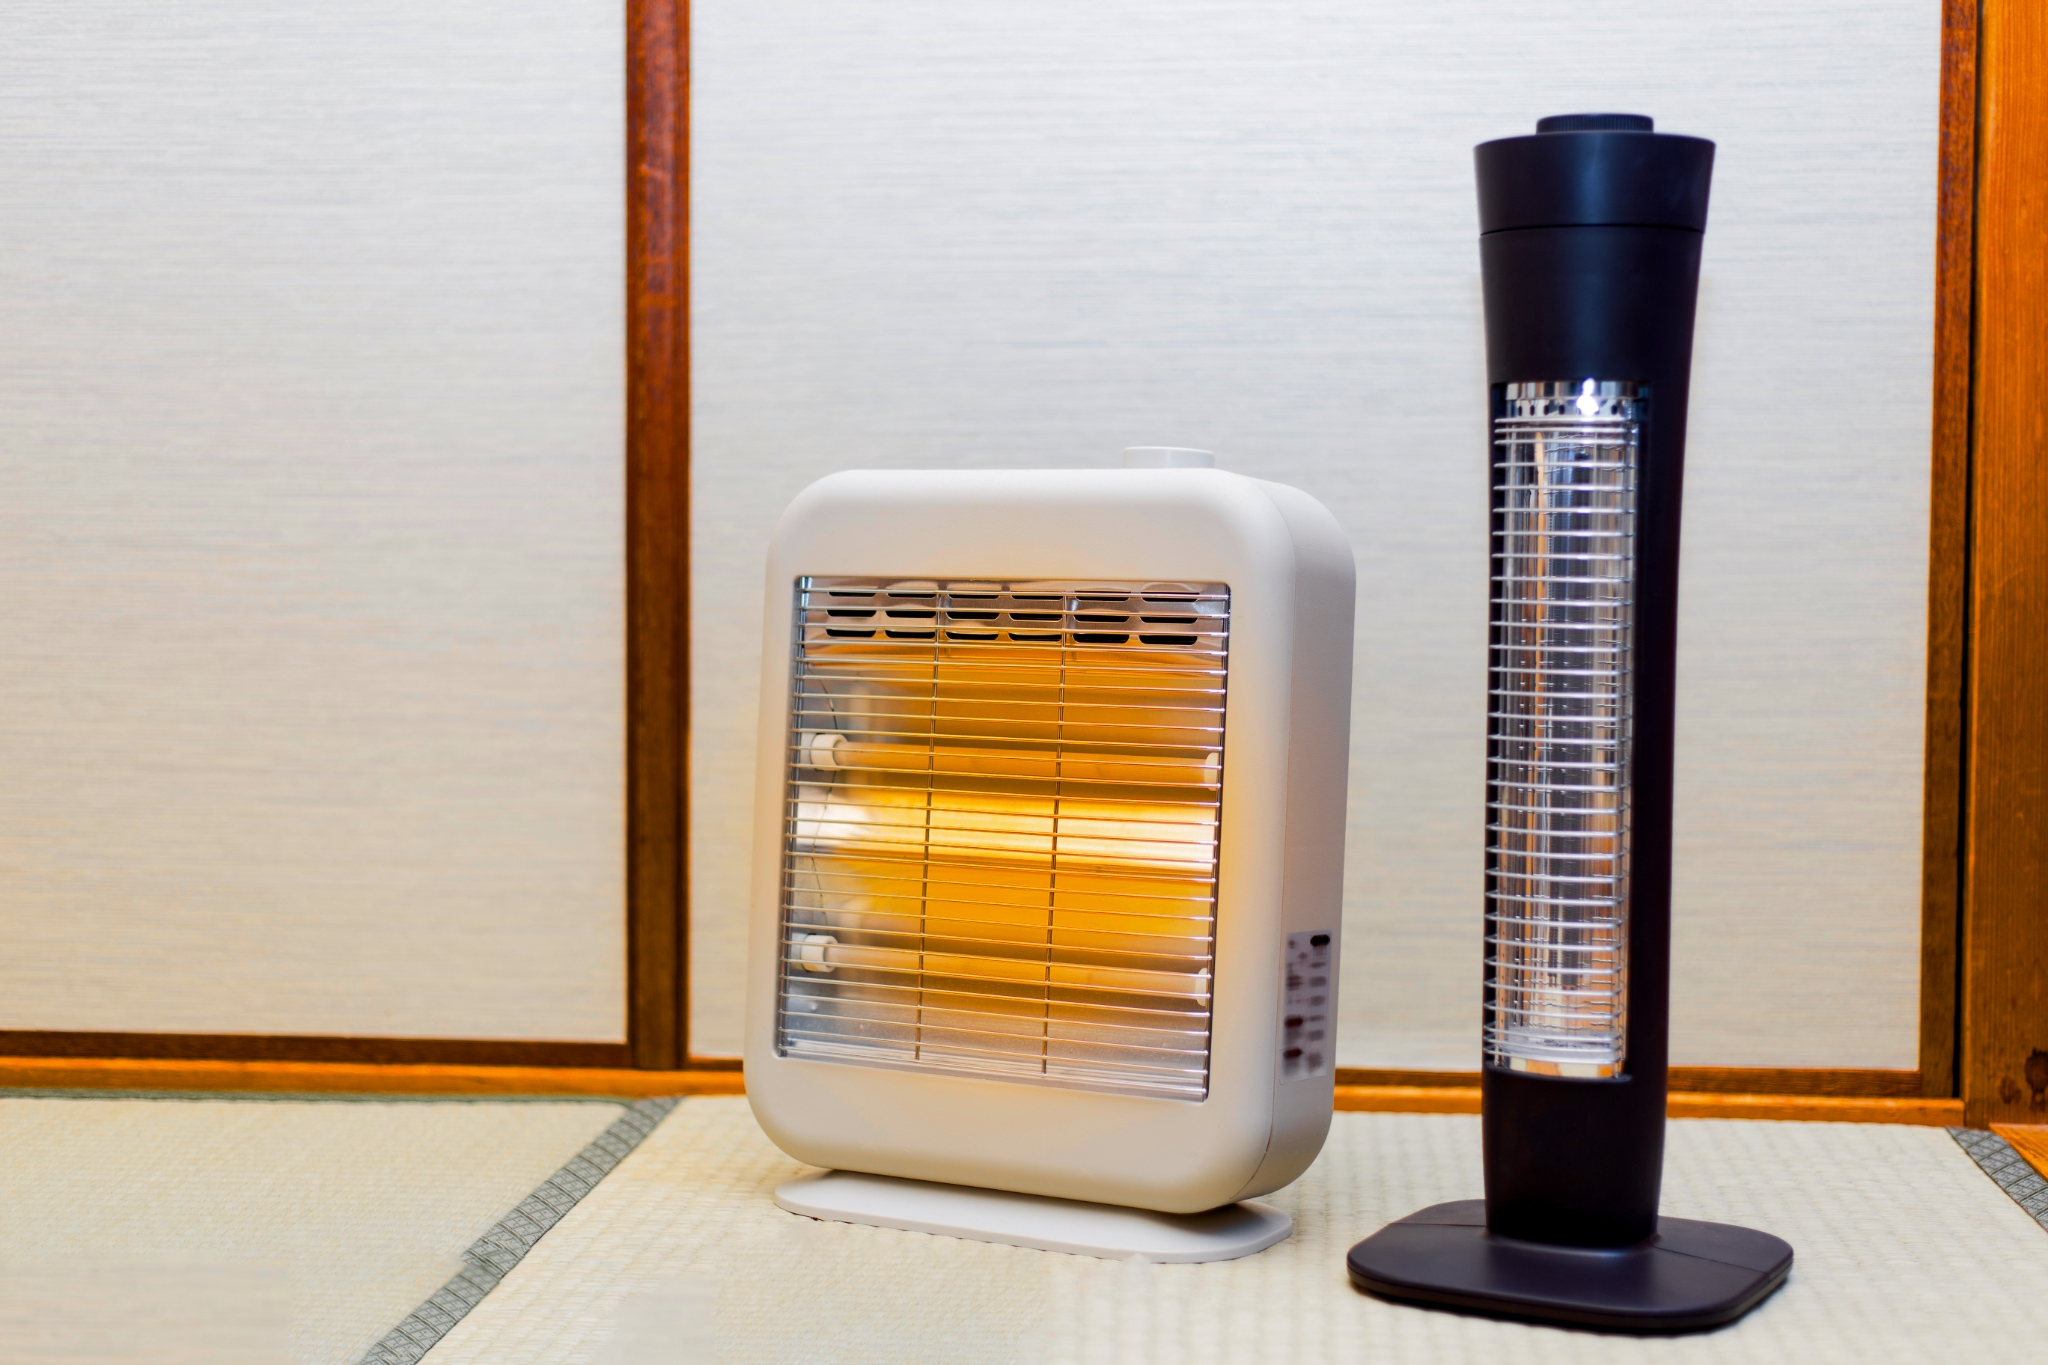 A Japanese electric heater